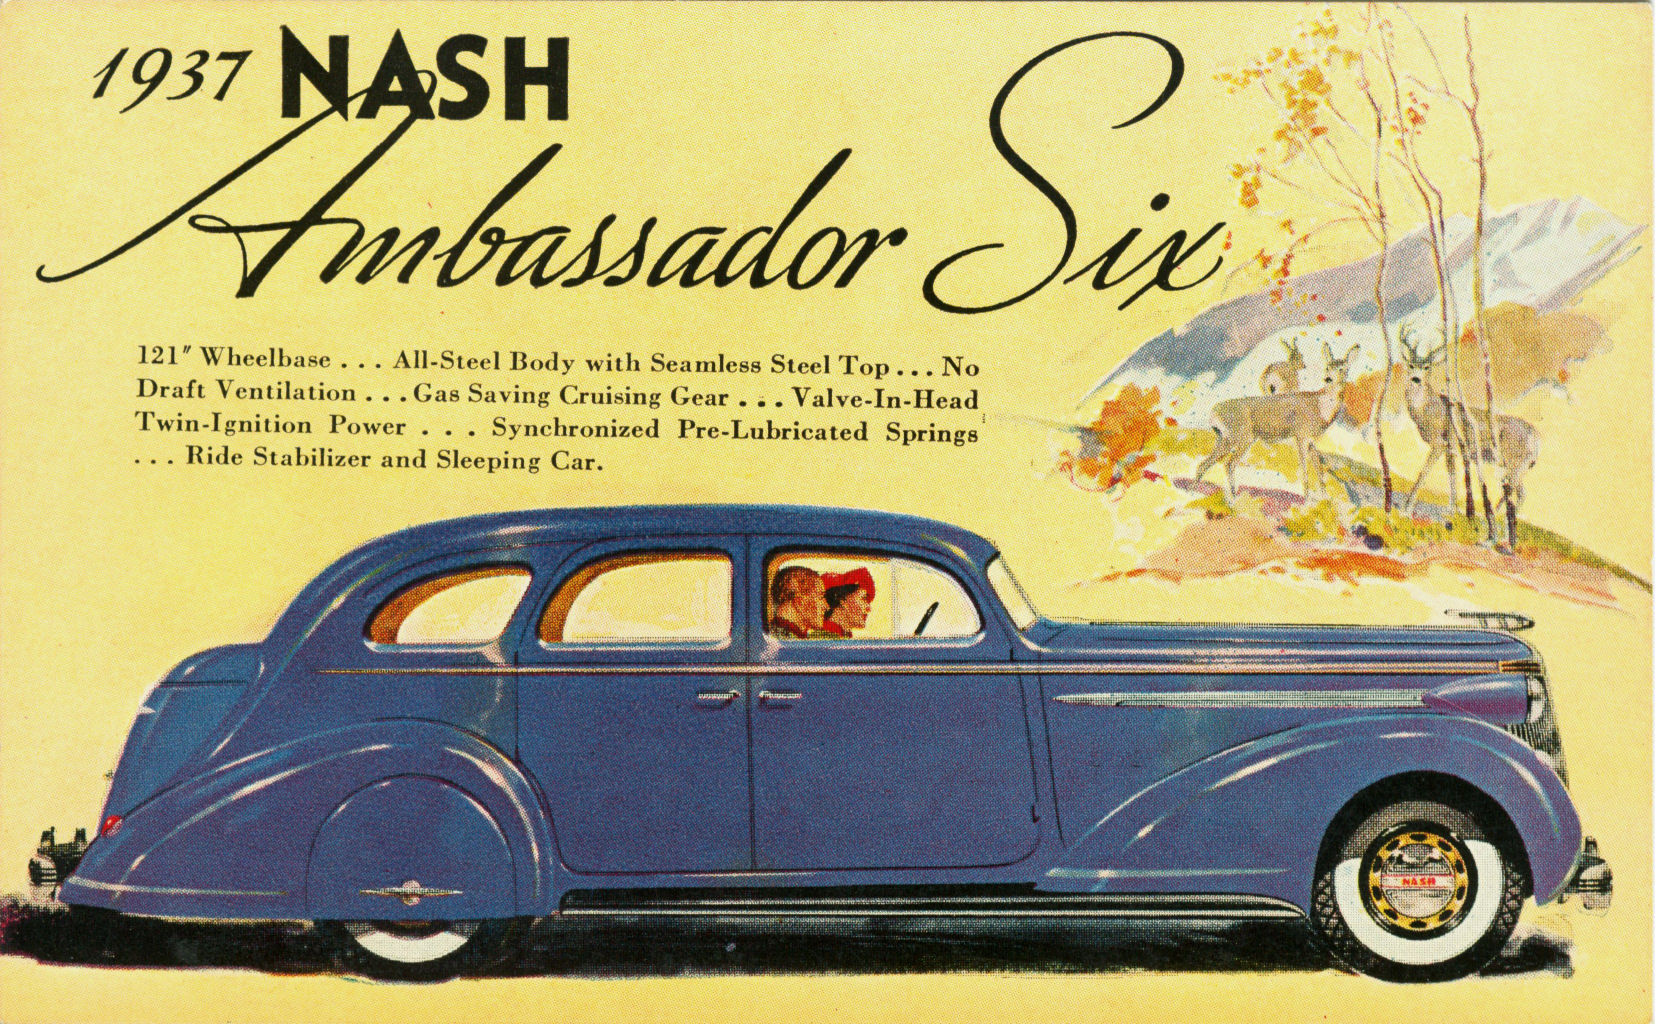 Directory Index: Nash Ads/1937